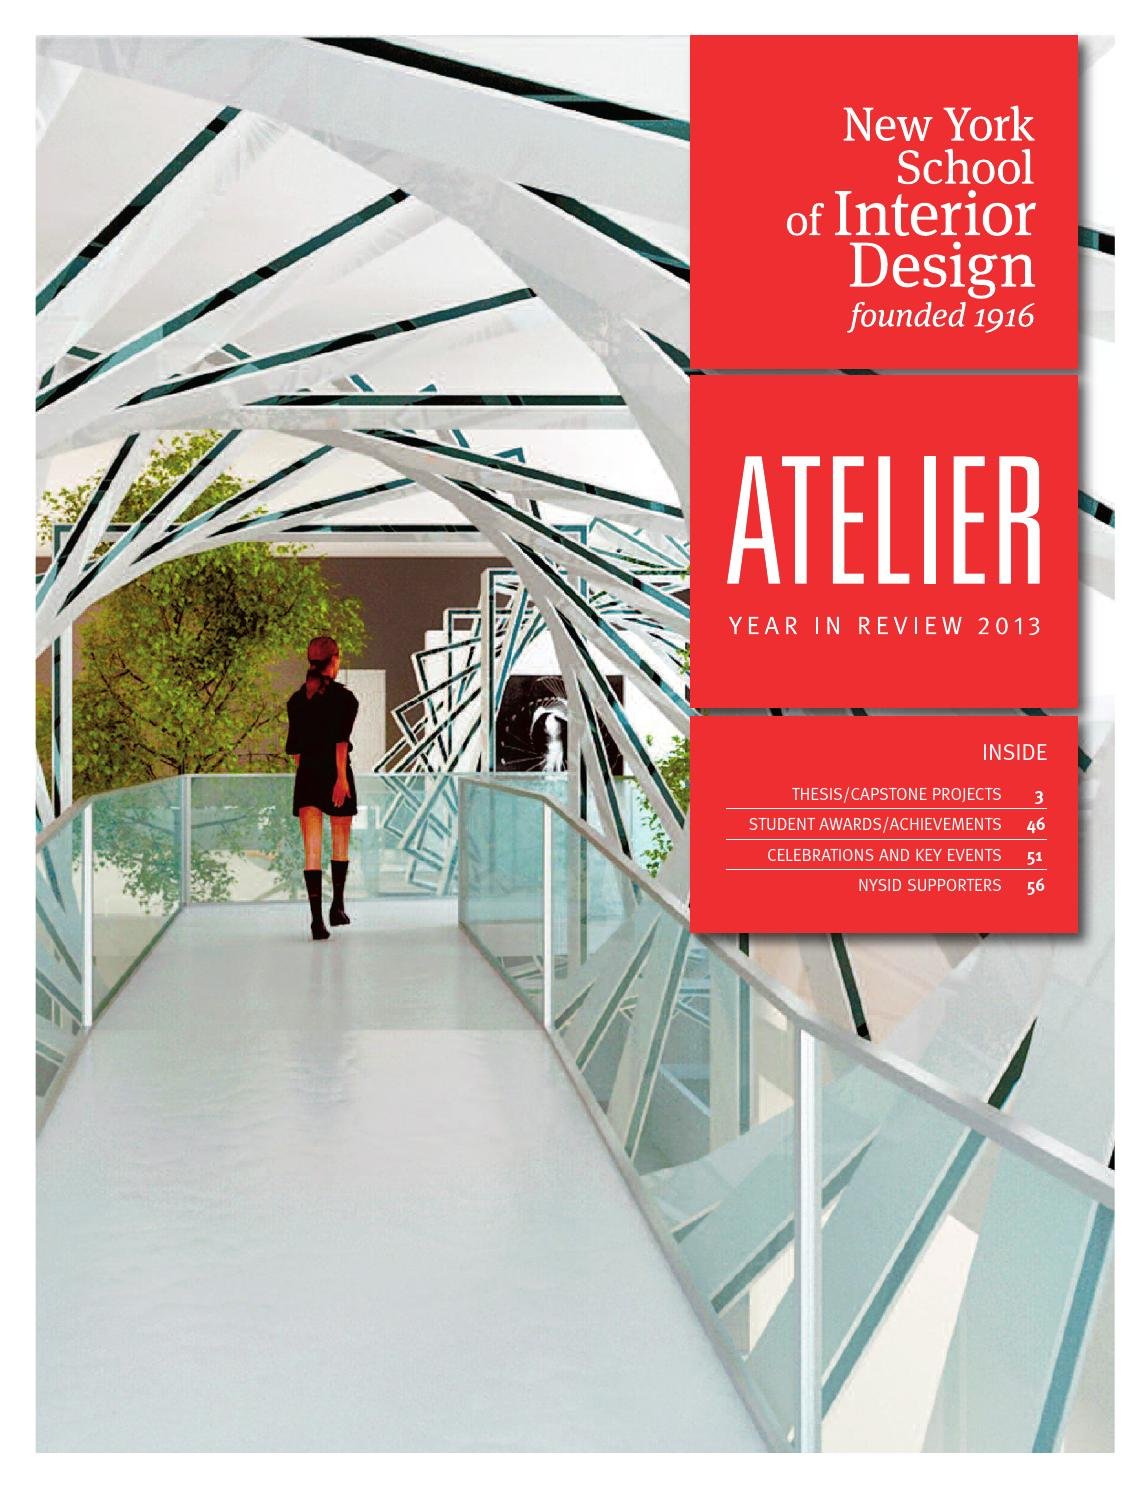 Issuu atelier year in review 2013 by new york school of for New york interior designer